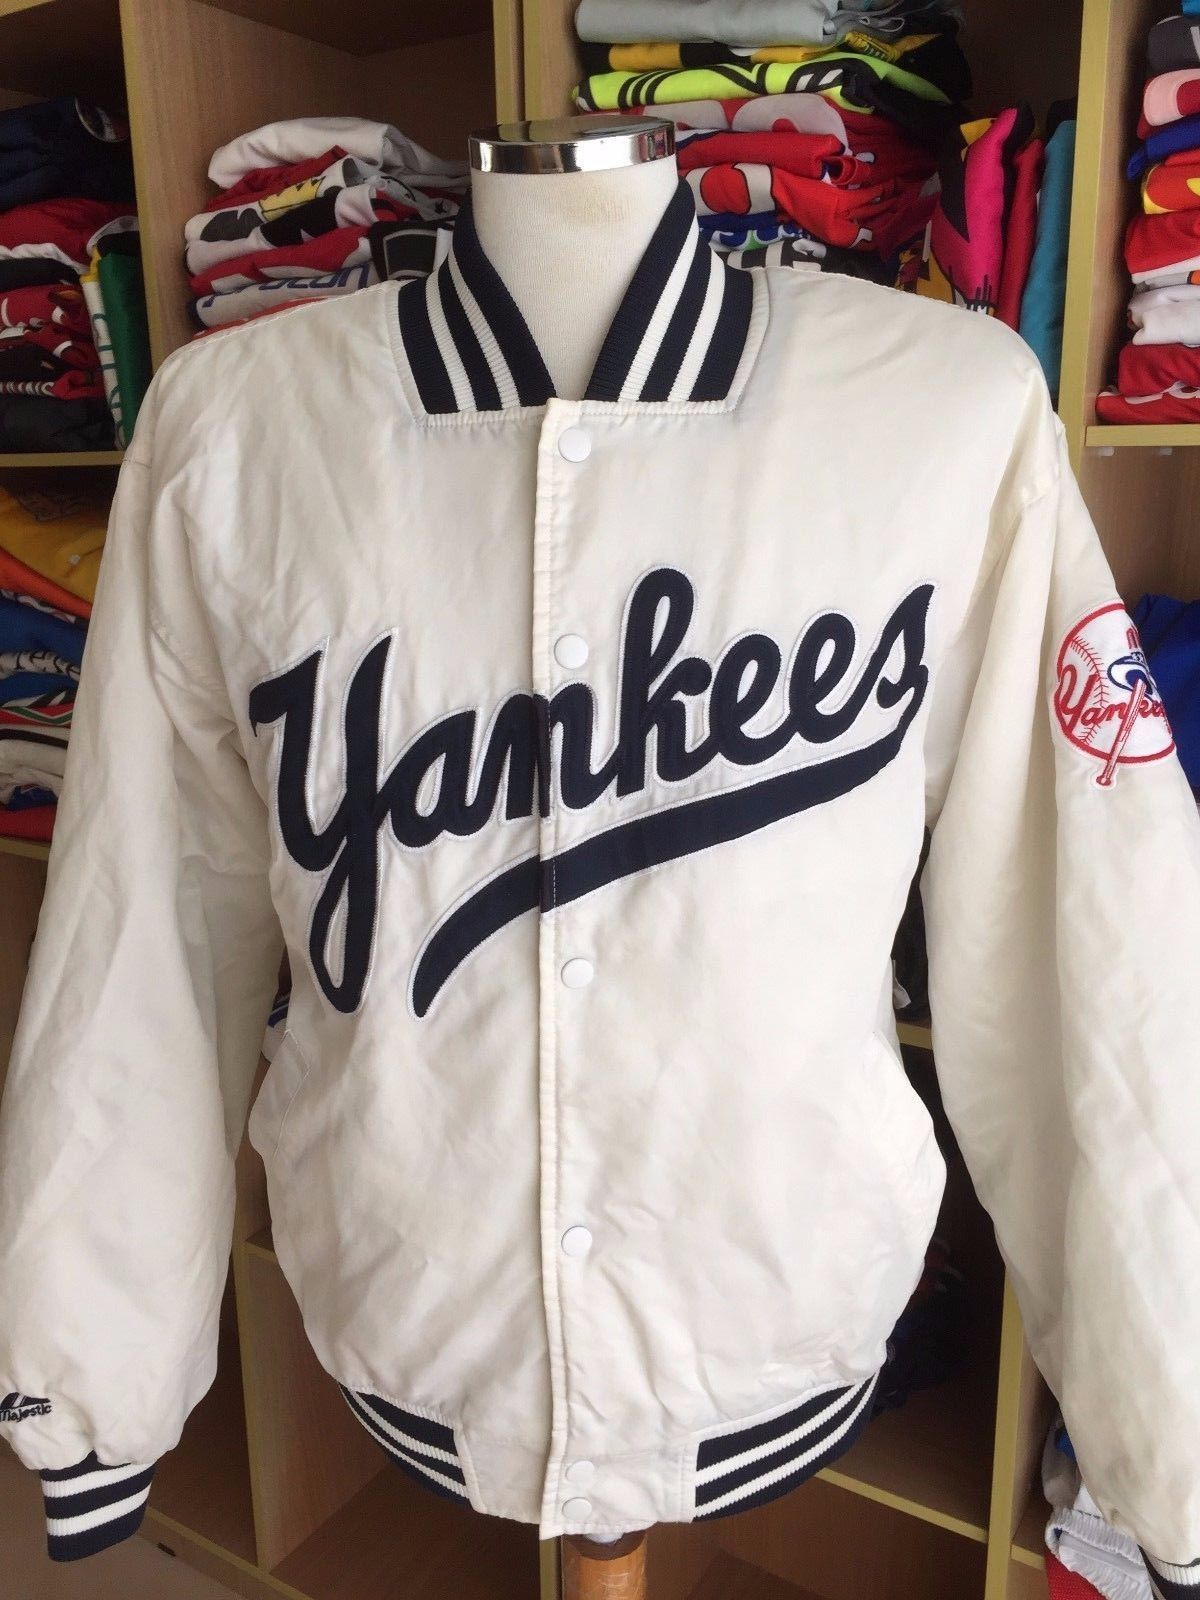 0d2ce9664 Vintage Jacket New York Yankees 90s (M White and 50 similar items. S l1600